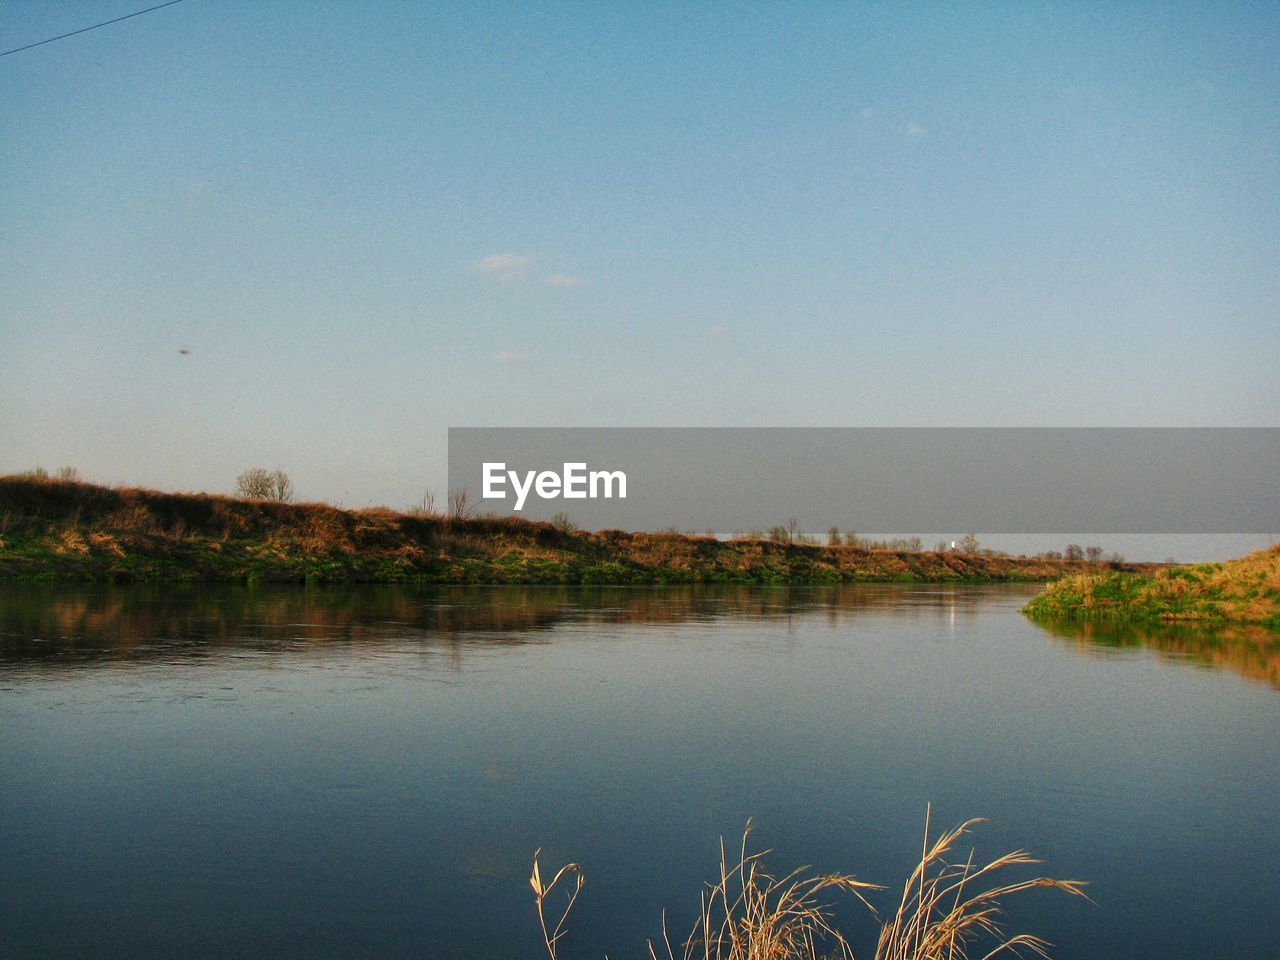 water, sky, lake, tranquility, reflection, nature, beauty in nature, tranquil scene, scenics - nature, no people, copy space, plant, clear sky, outdoors, non-urban scene, day, blue, tree